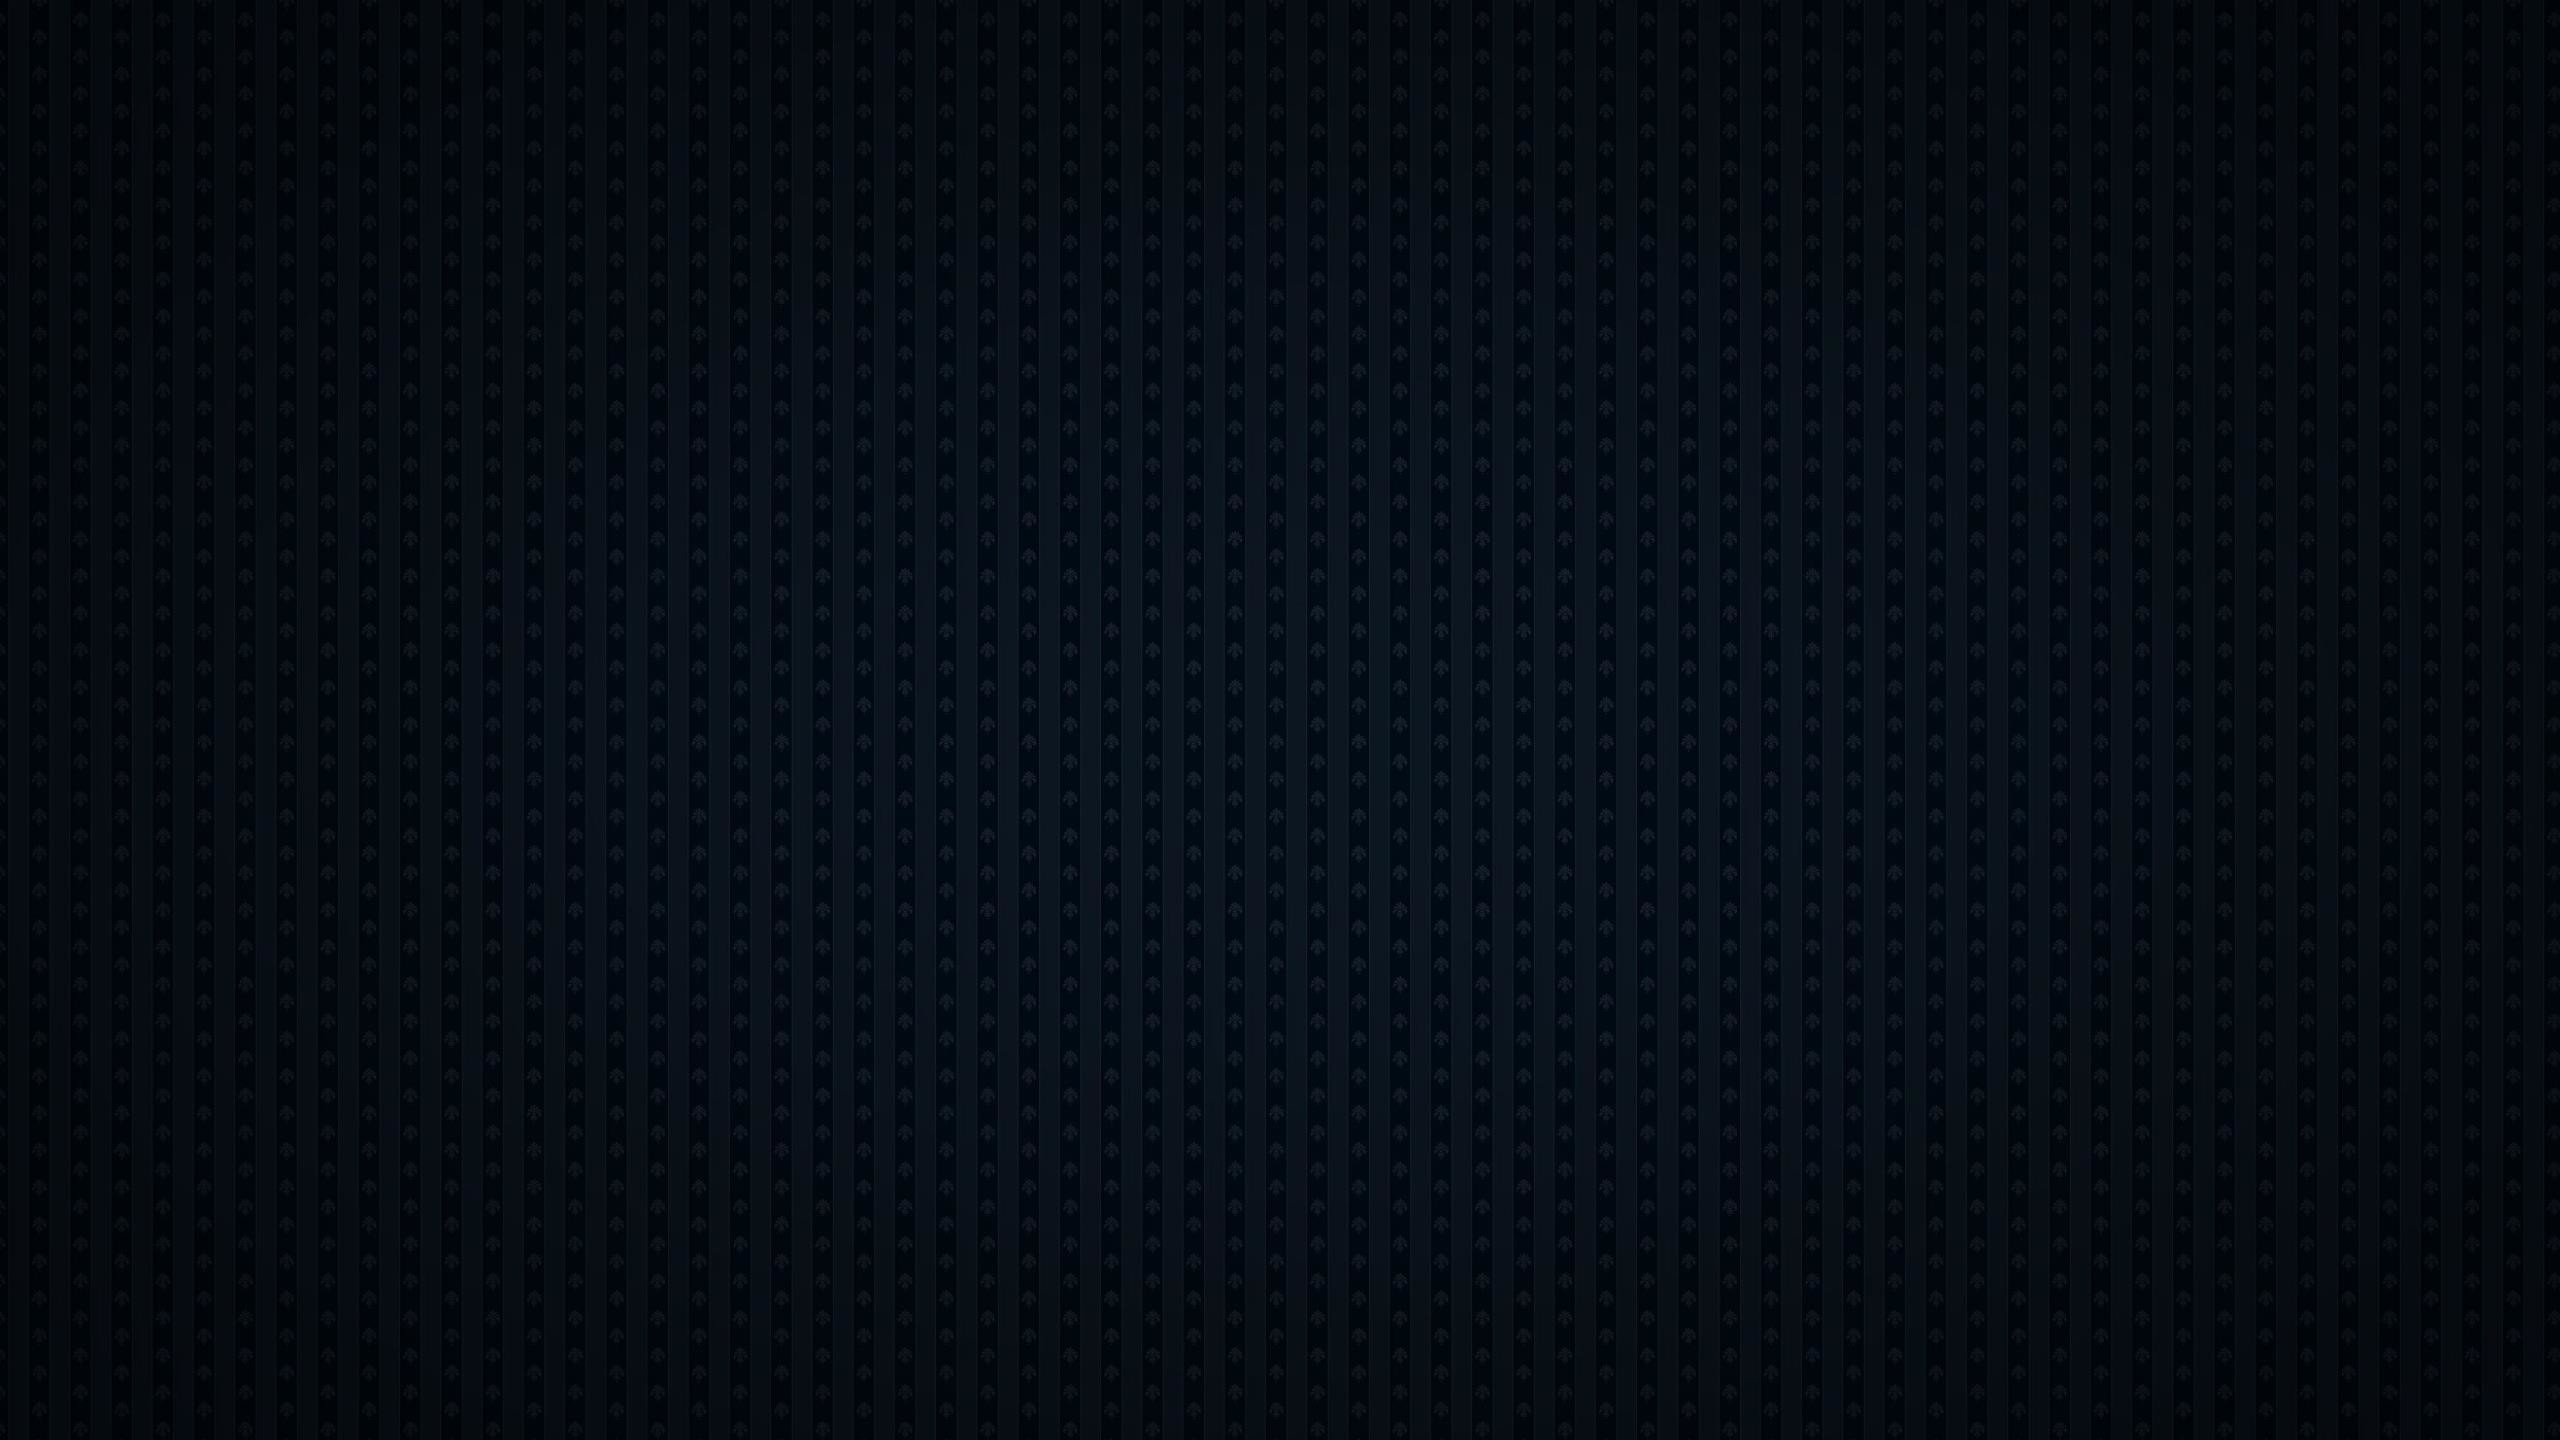 HD-Navy-Blue-Backgrounds